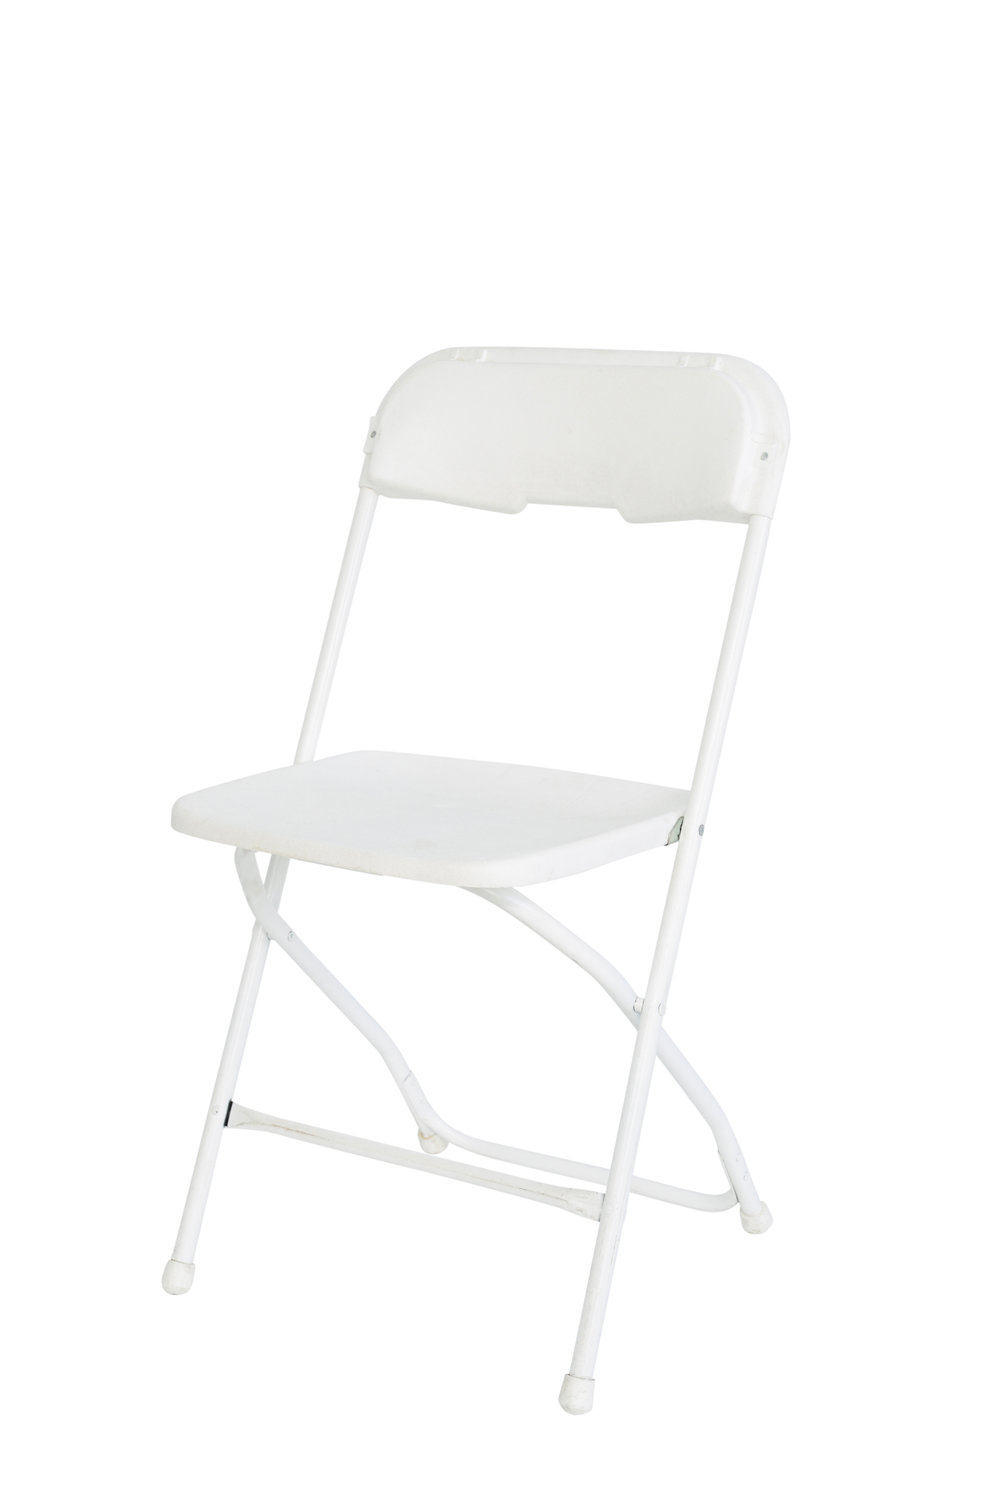 White folding chairs qty. 45